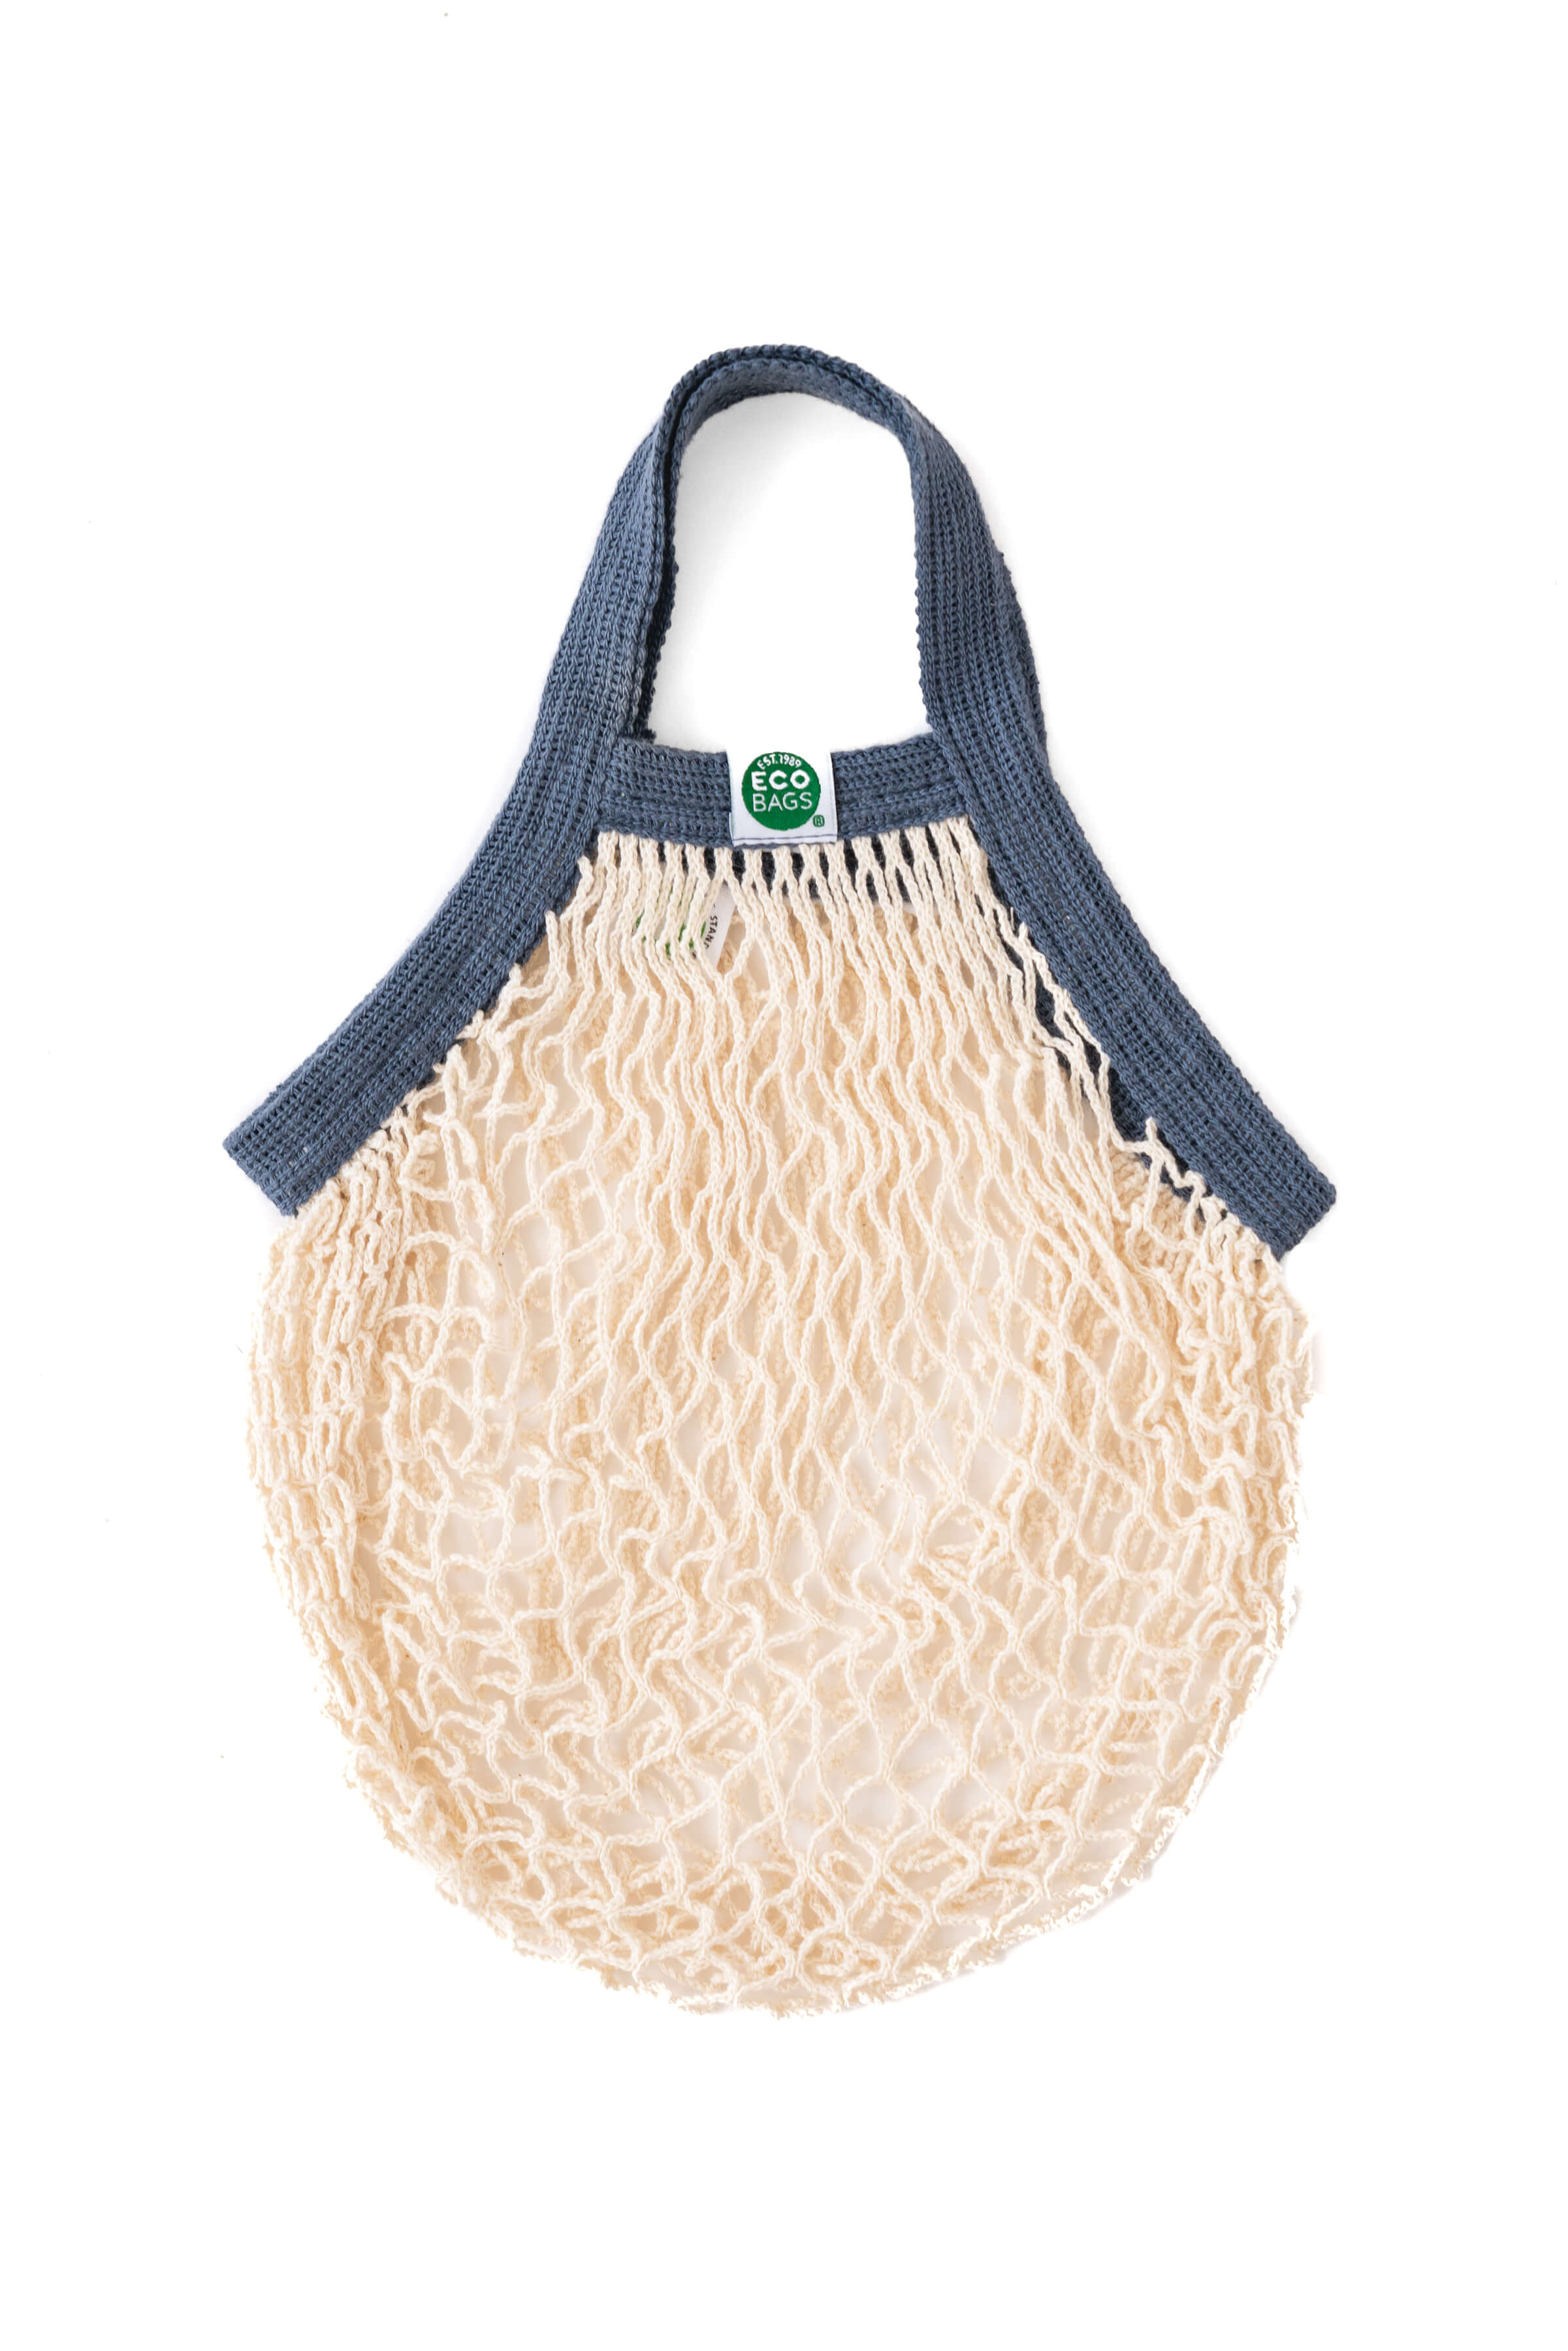 Green Gift Guide - Bag It